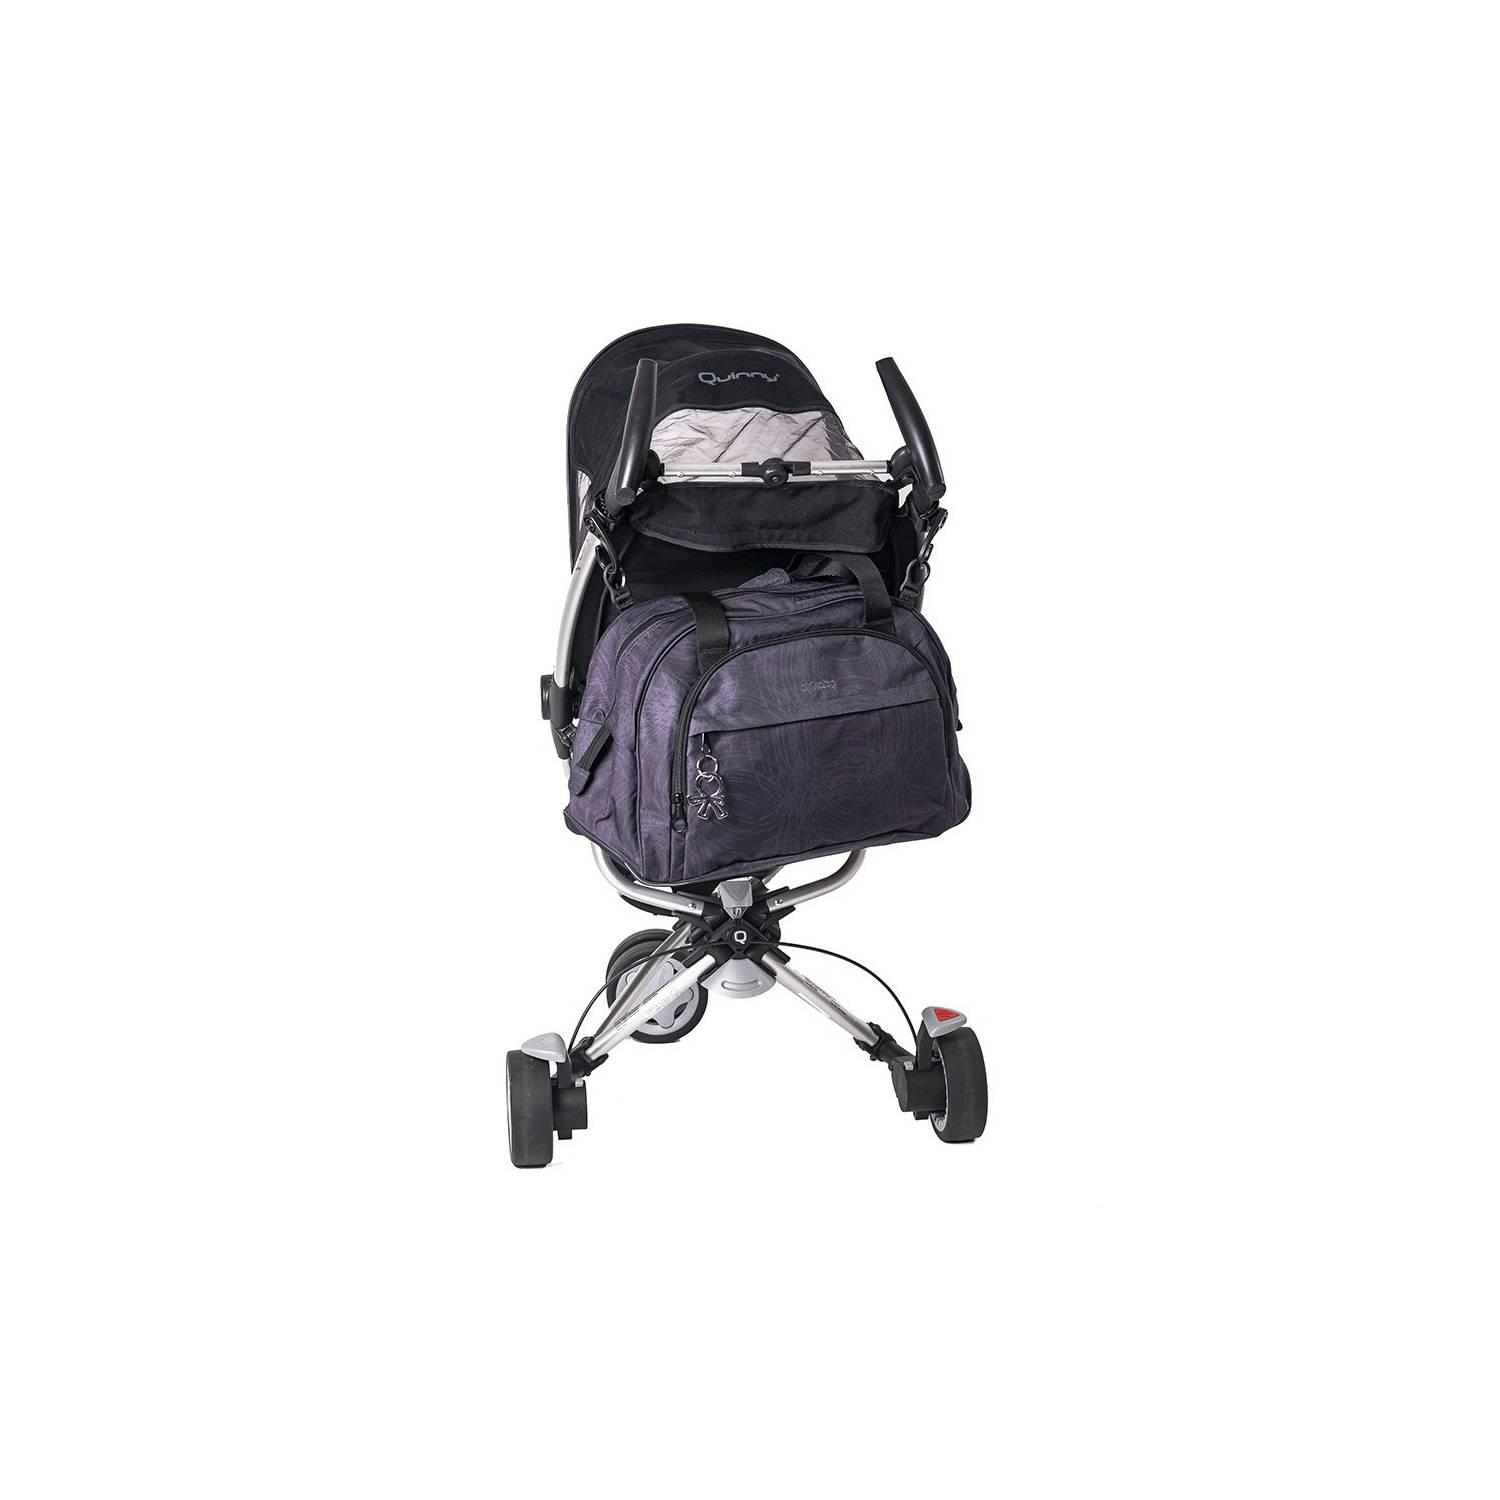 Buy Sell Cheapest Okiedog Shuttle Urban Best Quality Product Deals Agate Black Scribbles Tas Bayi